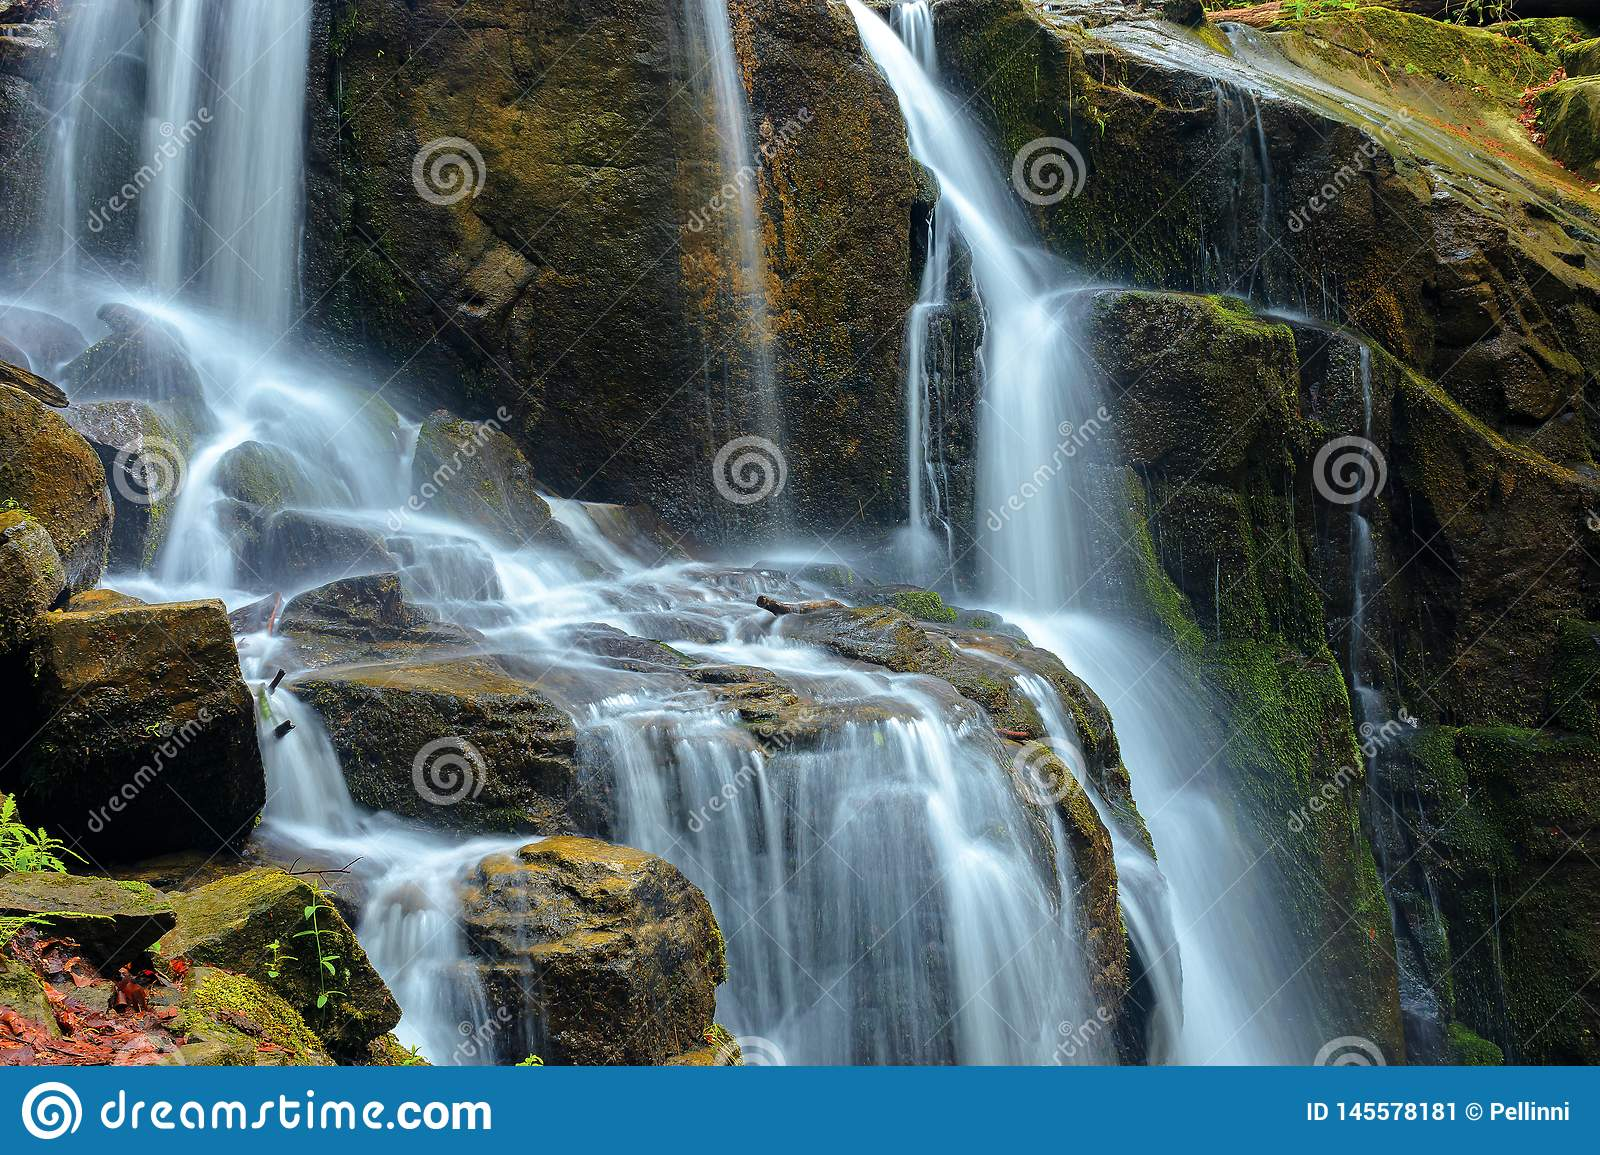 Streams and cascades of waterfall